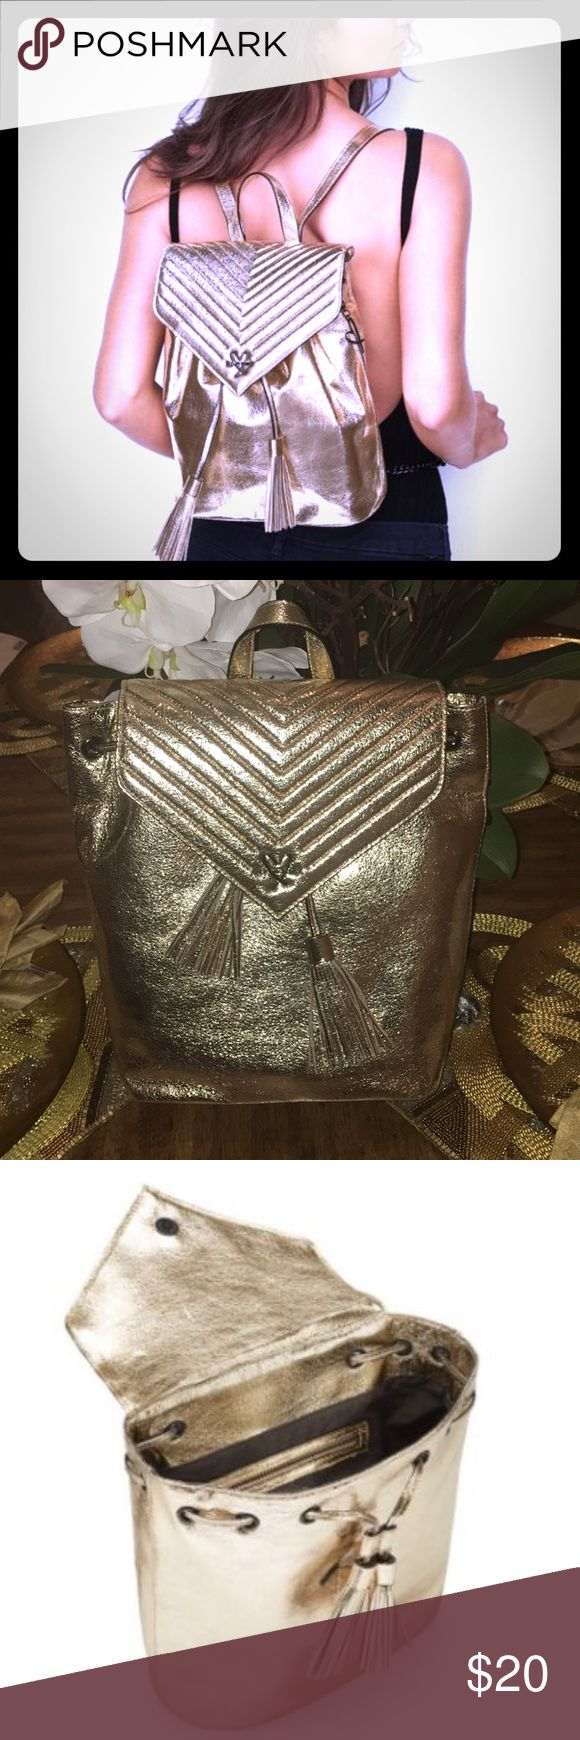 VICTORIA SECRET'S METALLIC BACKPACK Flirty and Fun Brand New ... Never Used!!! Victoria's Secret Bags Backpacks